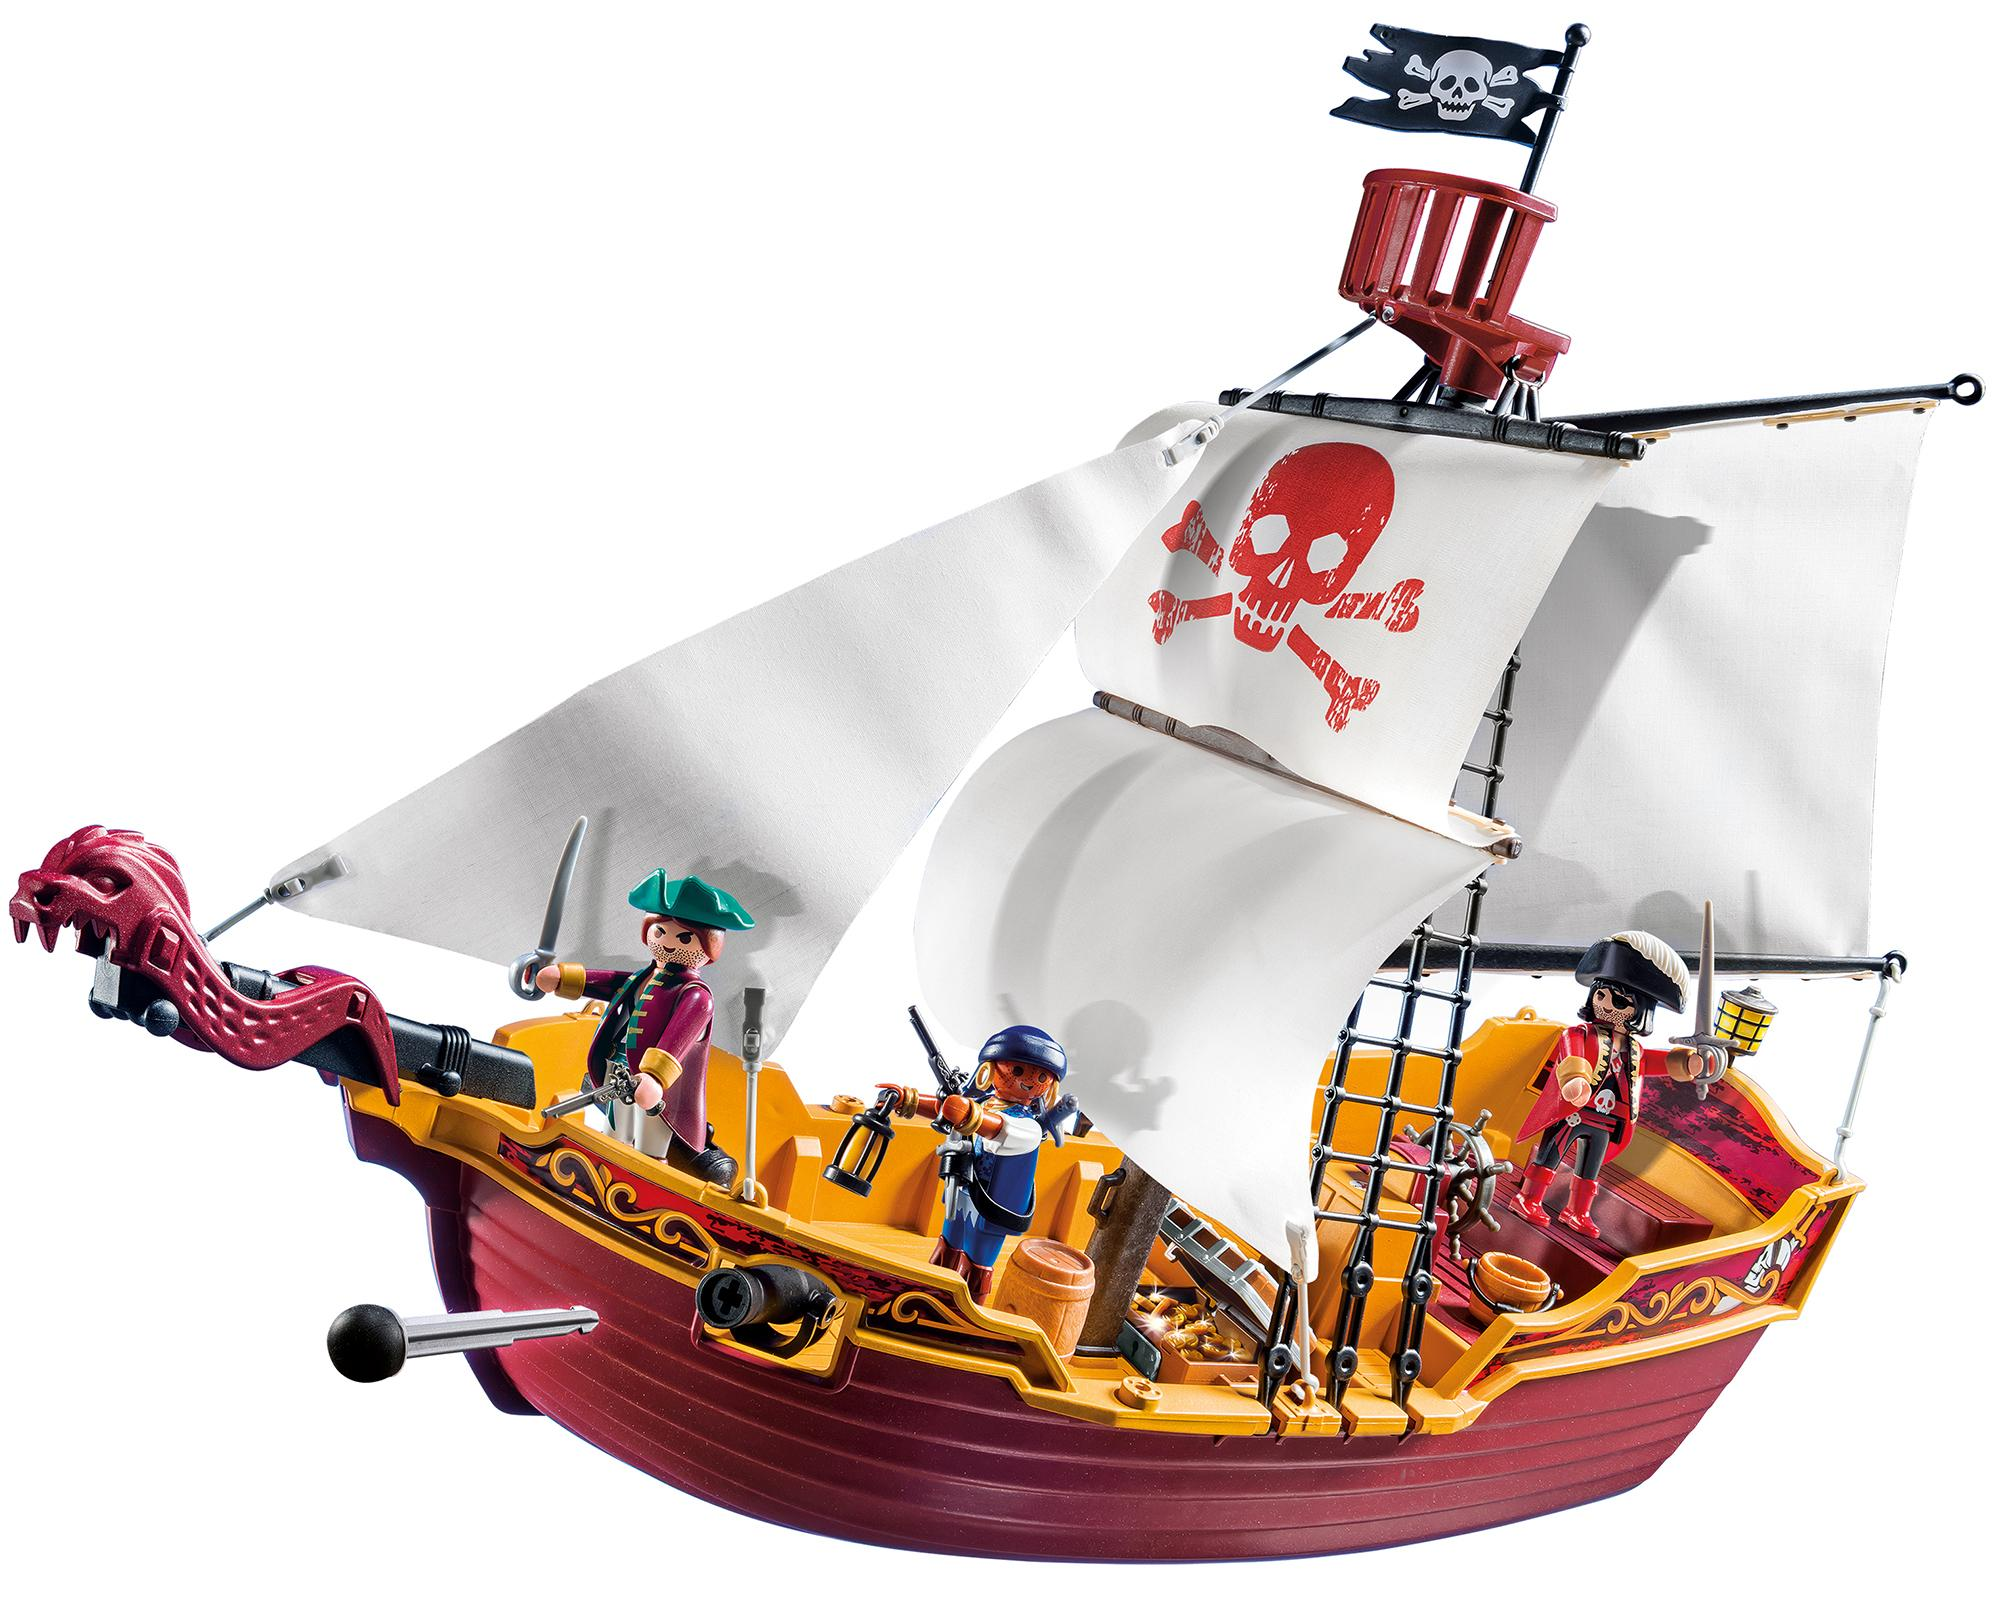 Playmobil Playmobil pirate boat with pirates